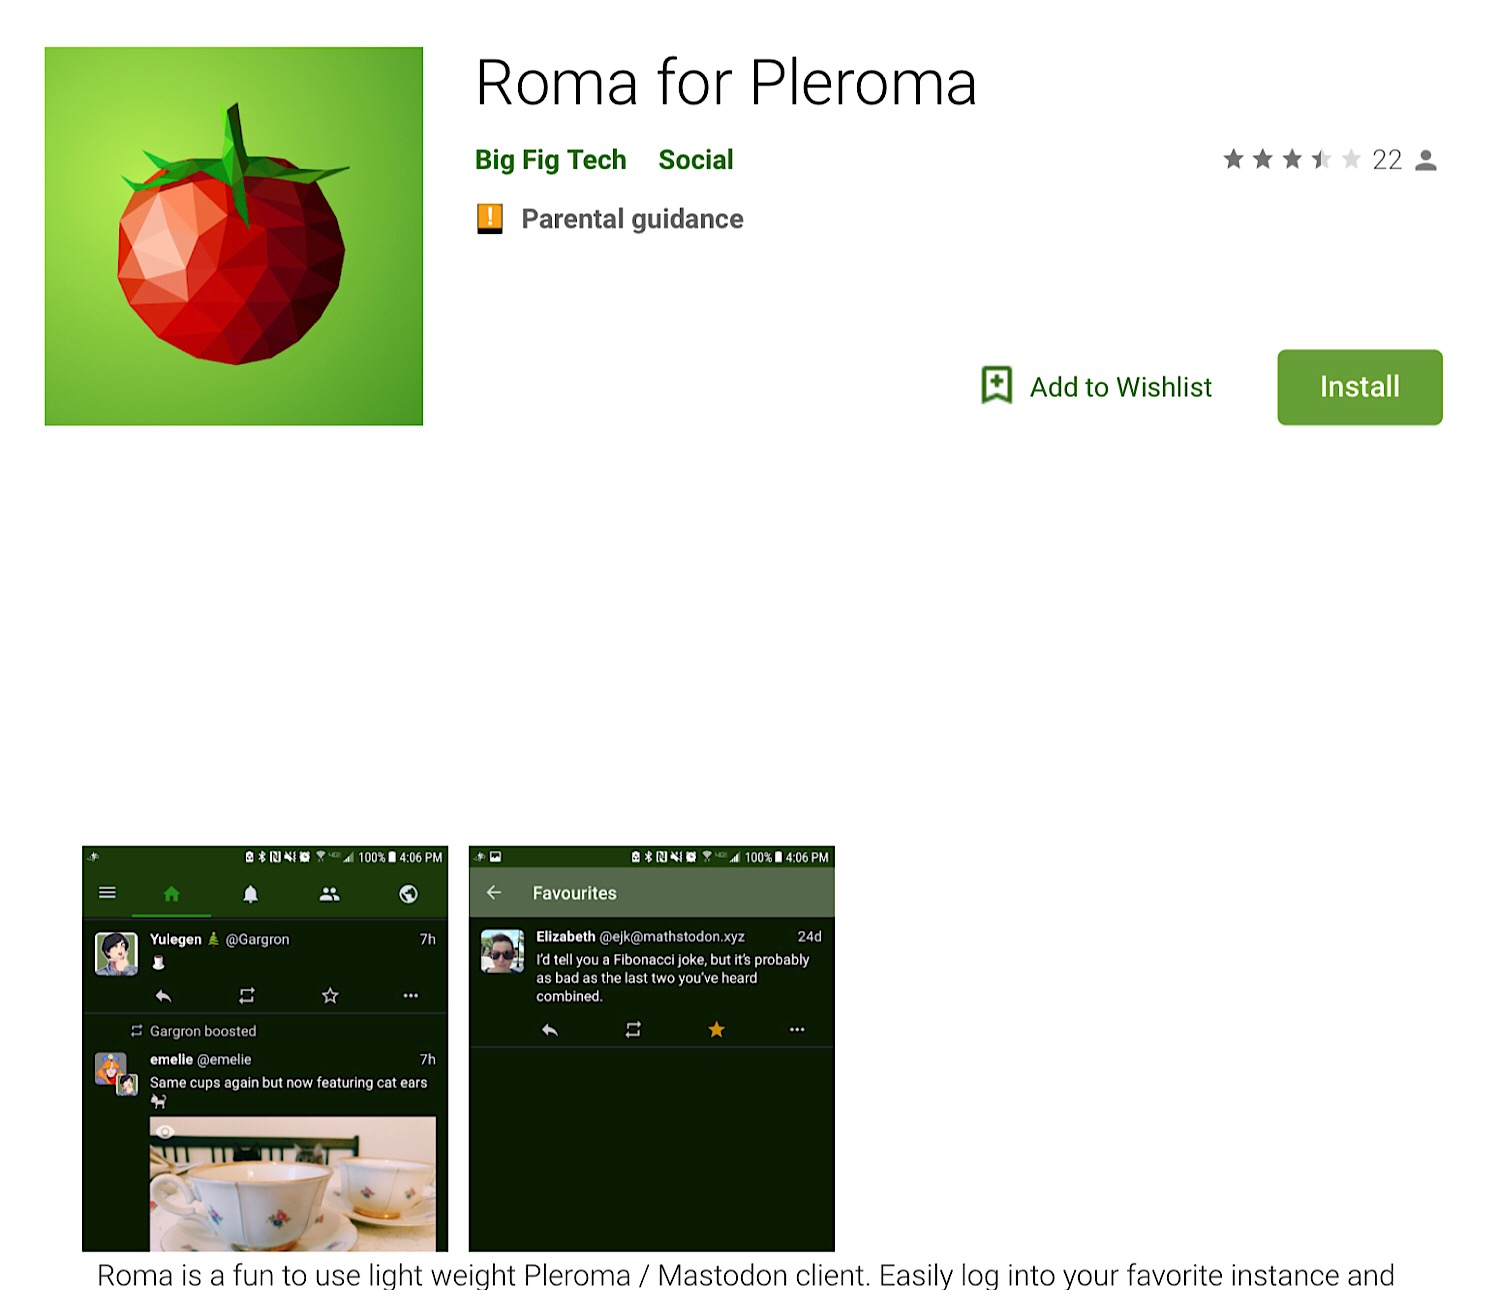 The Roma for Plemora Android app.